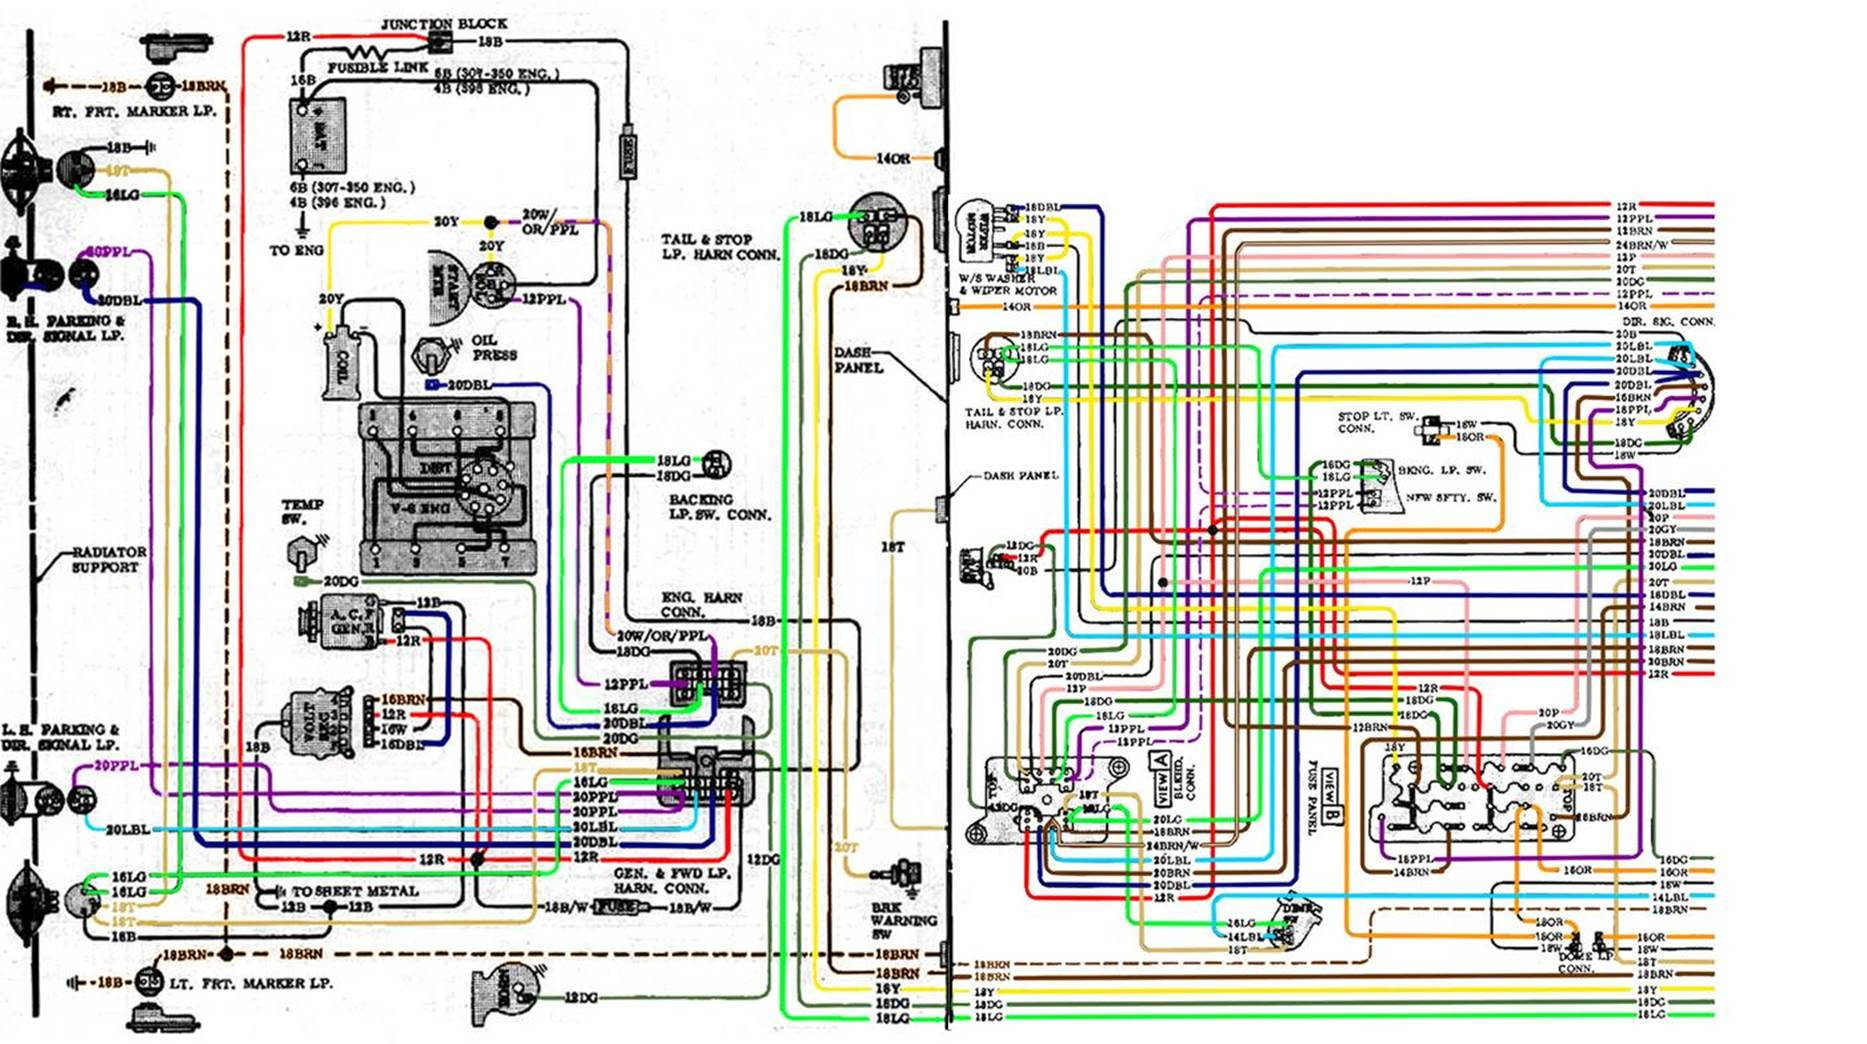 image002 67 72 chevy wiring diagram 72 chevy truck wiring diagram at soozxer.org